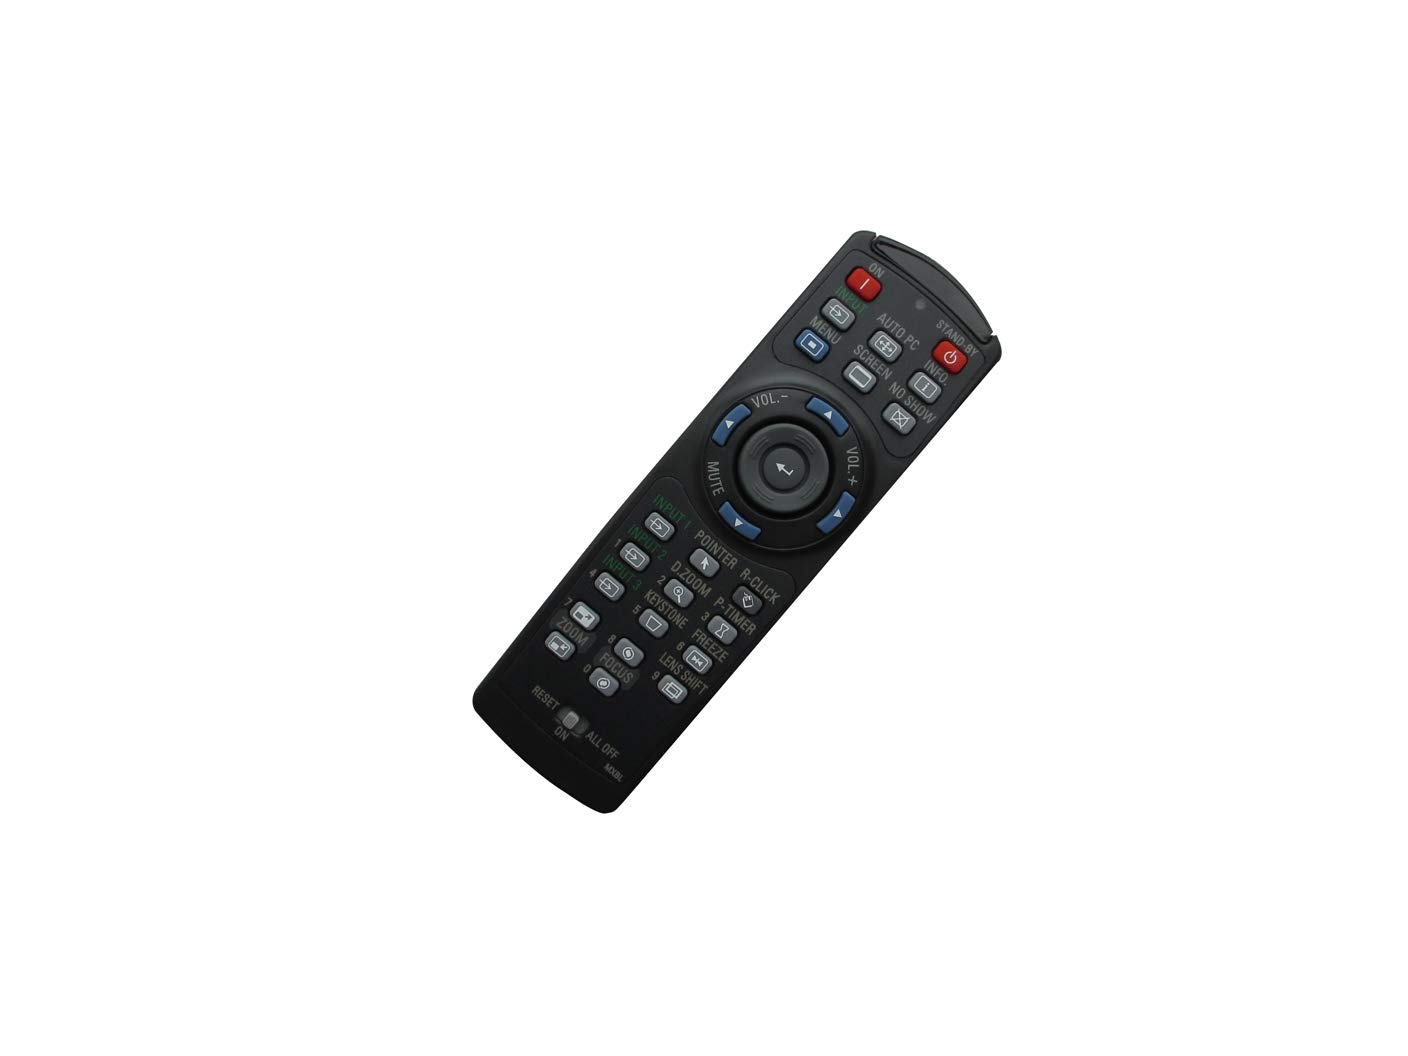 Hotsmtbang Replacement Remote Control for Christie Vivid LX380 LX450 LX300 LX505 XGA Conference Room 3LCD Projector by Hotsmtbang